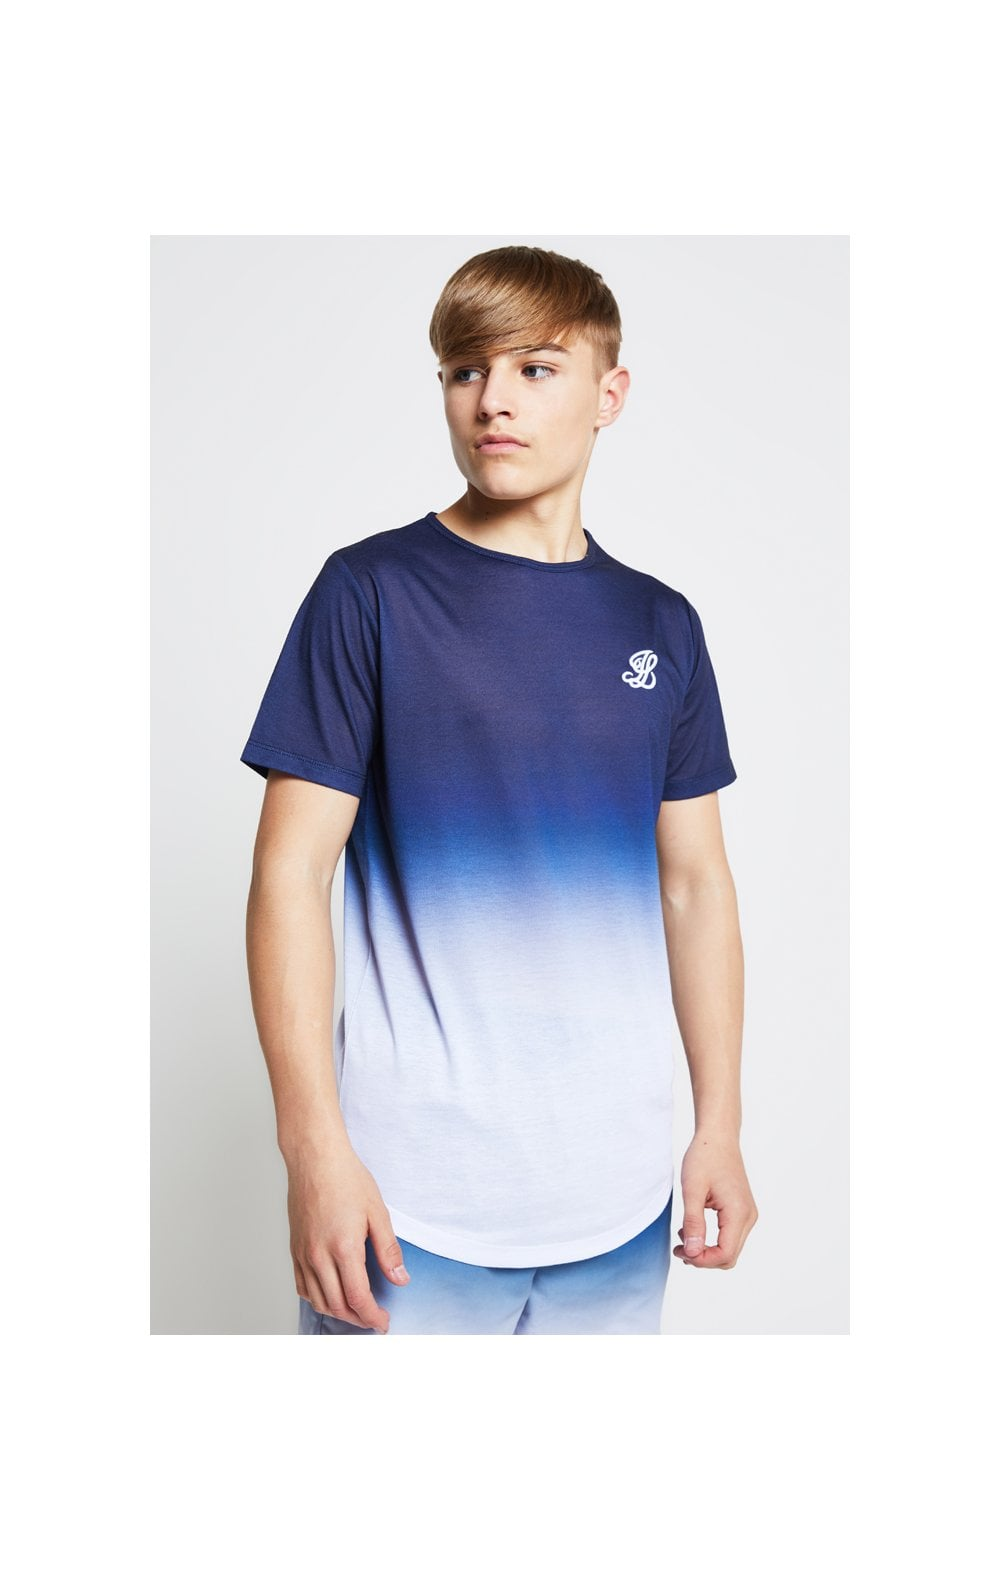 Illusive London Fade Tee - Navy & White (2)